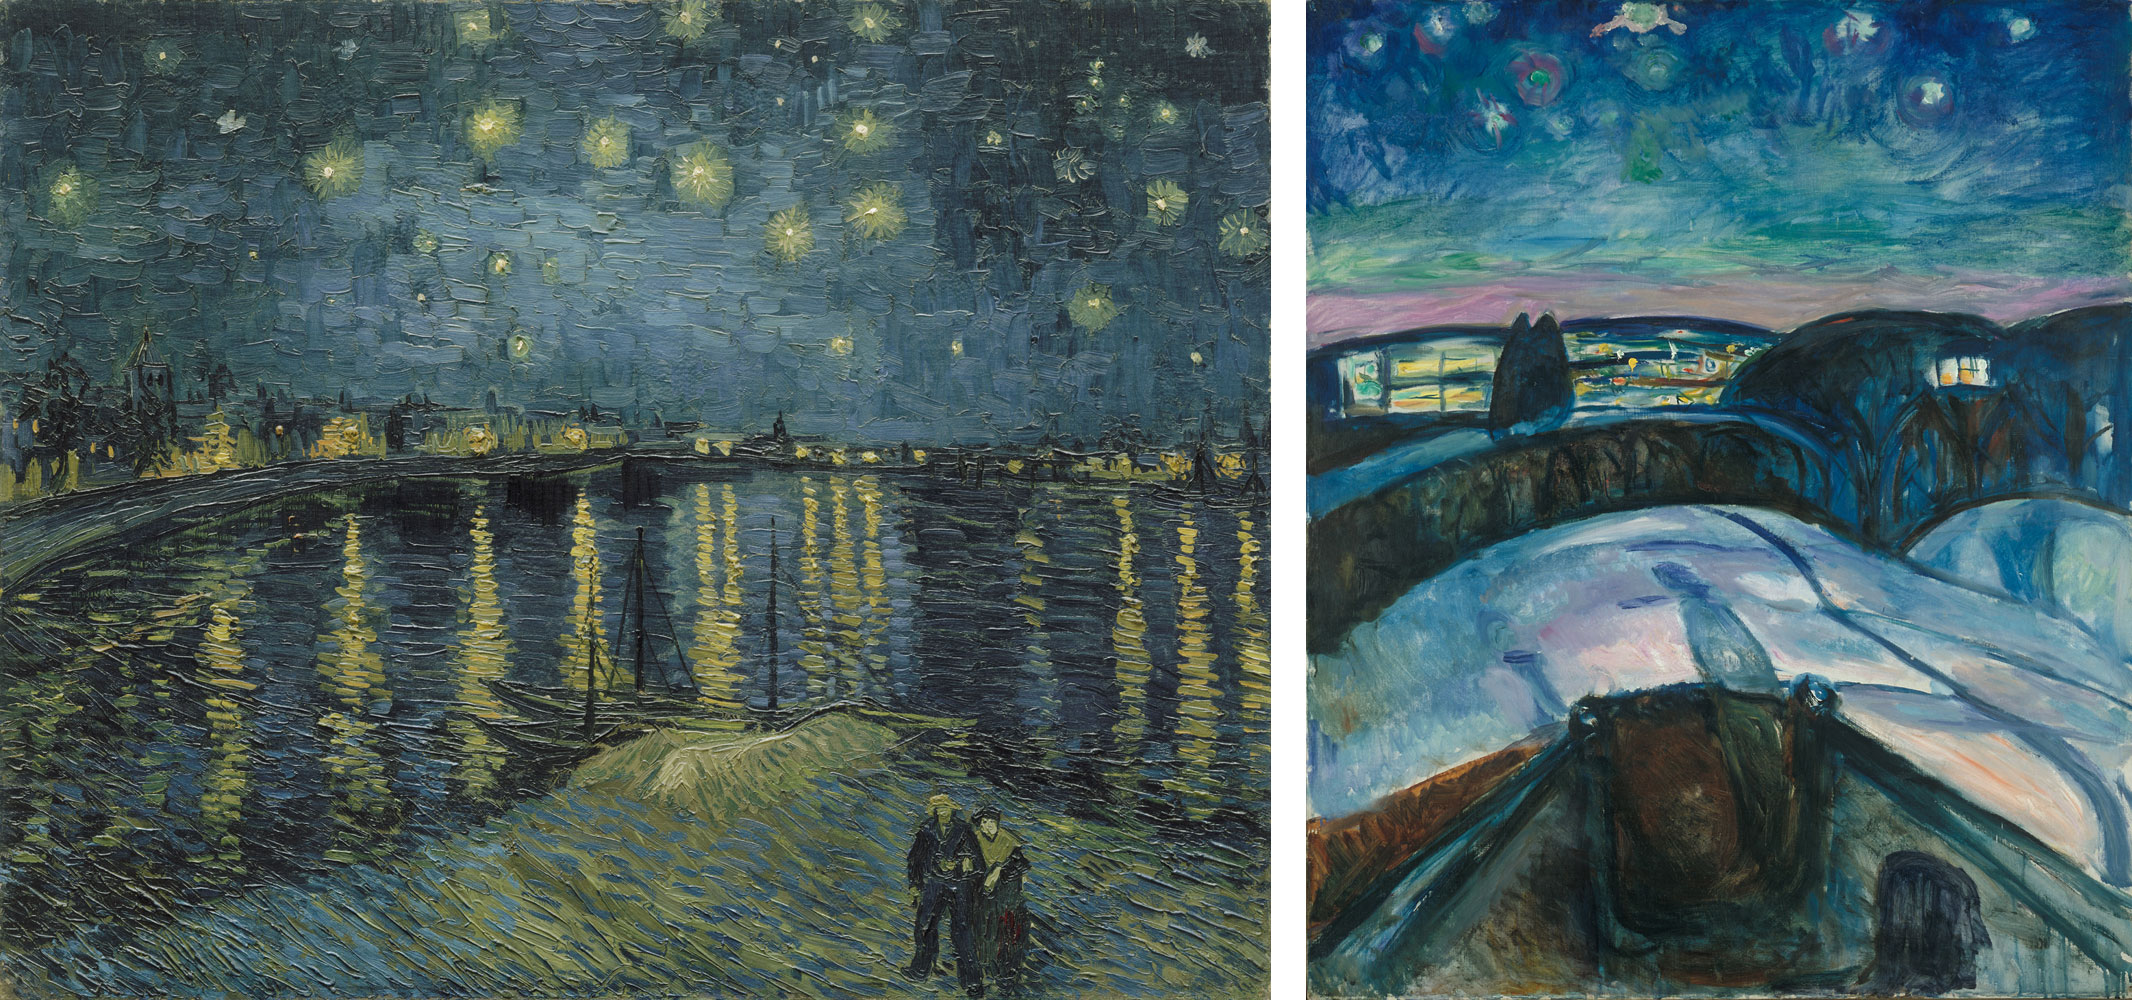 WELCOME TO THE VINCENT VAN GOGH GALLERY!